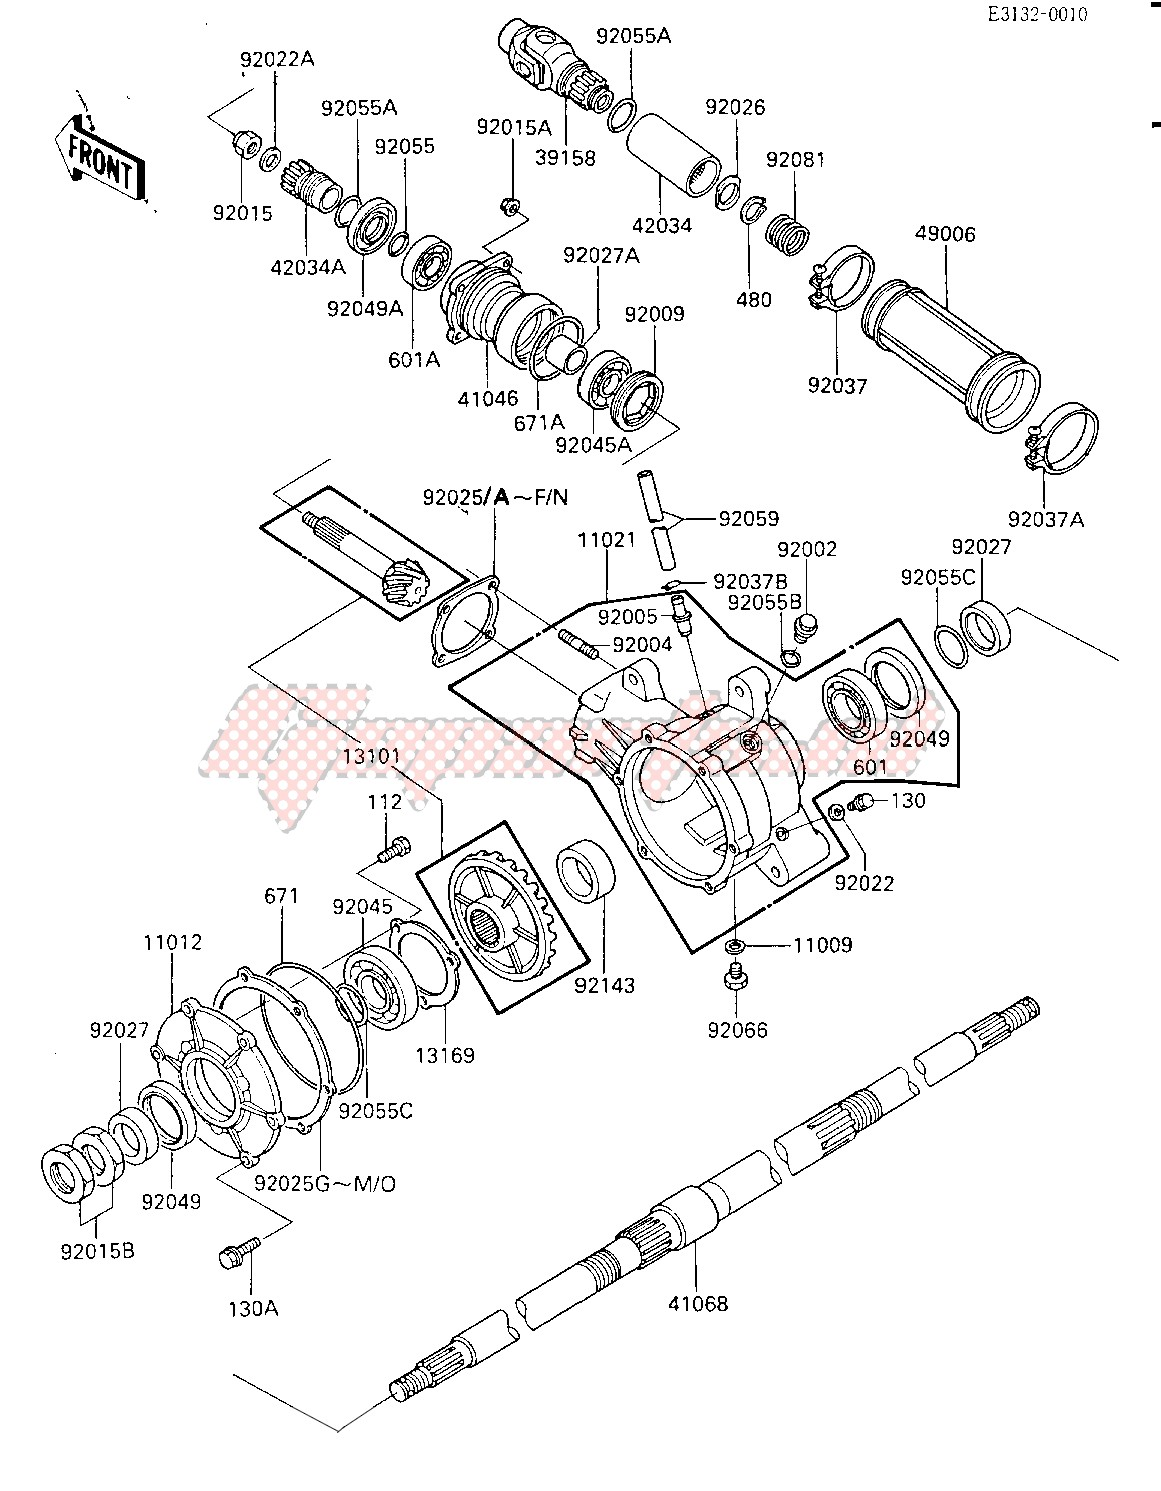 DRIVE SHAFT_FINAL GEARS_REAR AXLE -- -E_NO. 015127- - image